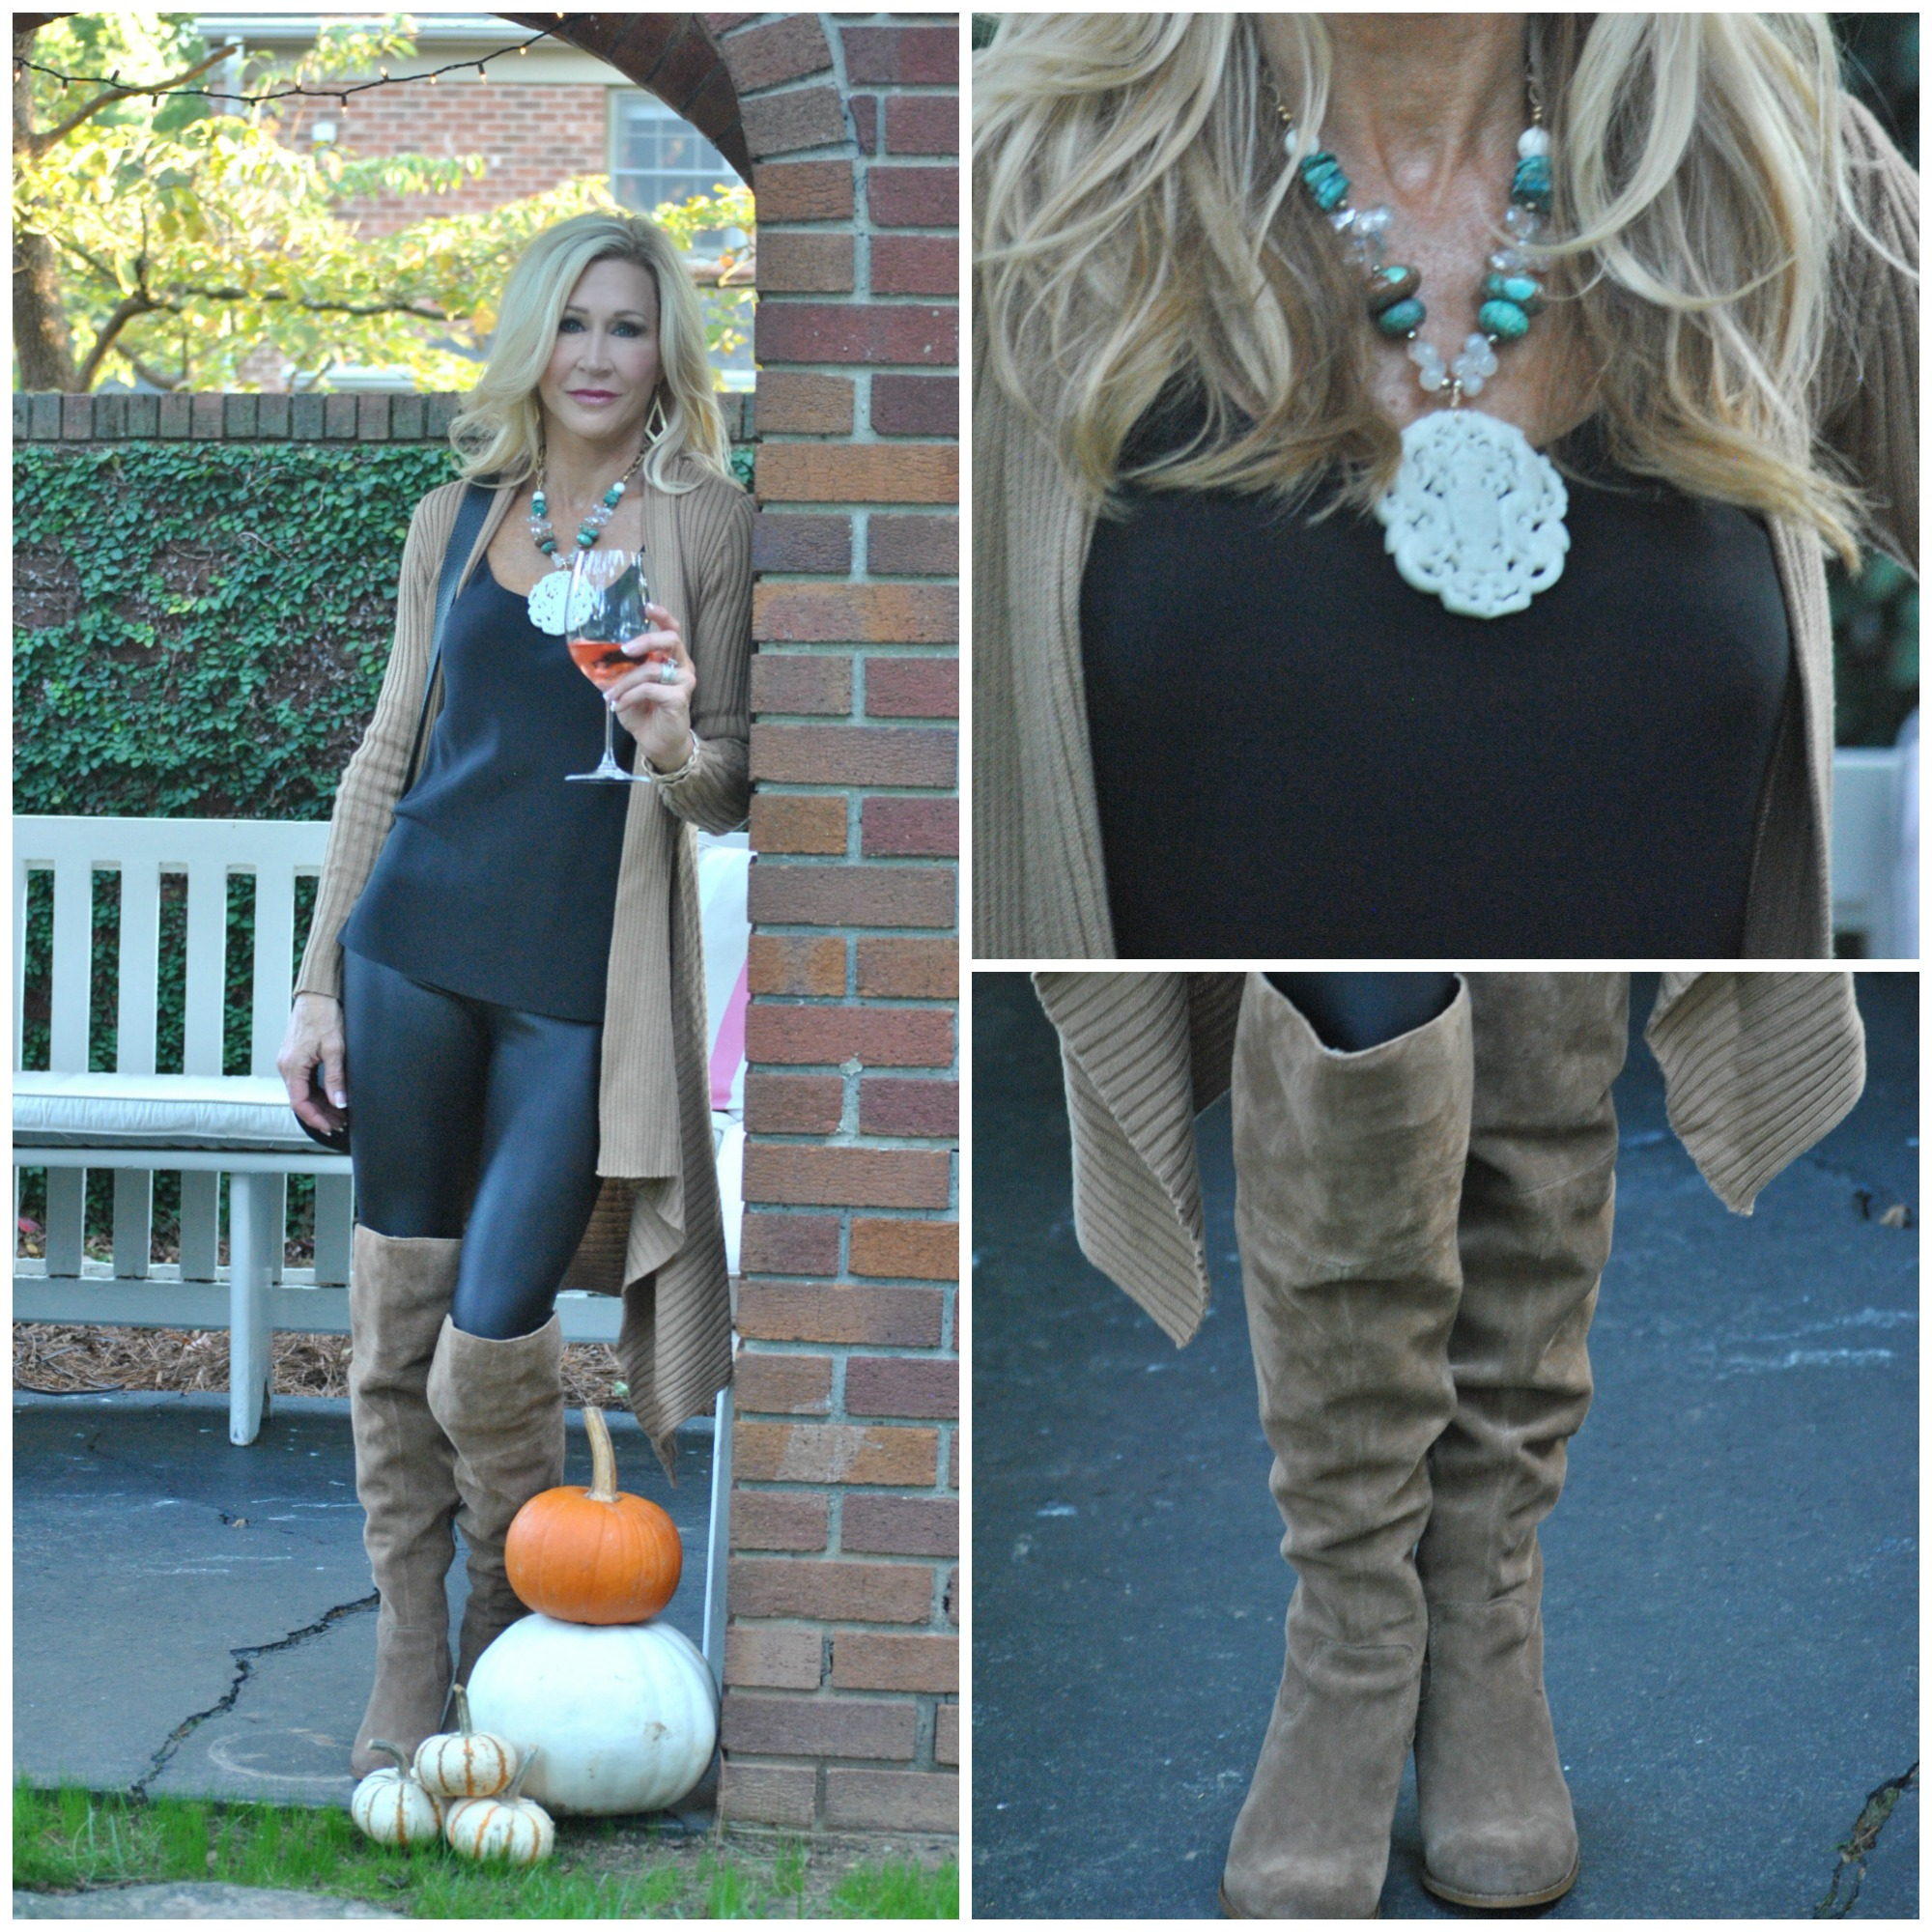 Leggings, tall boots and statement necklace